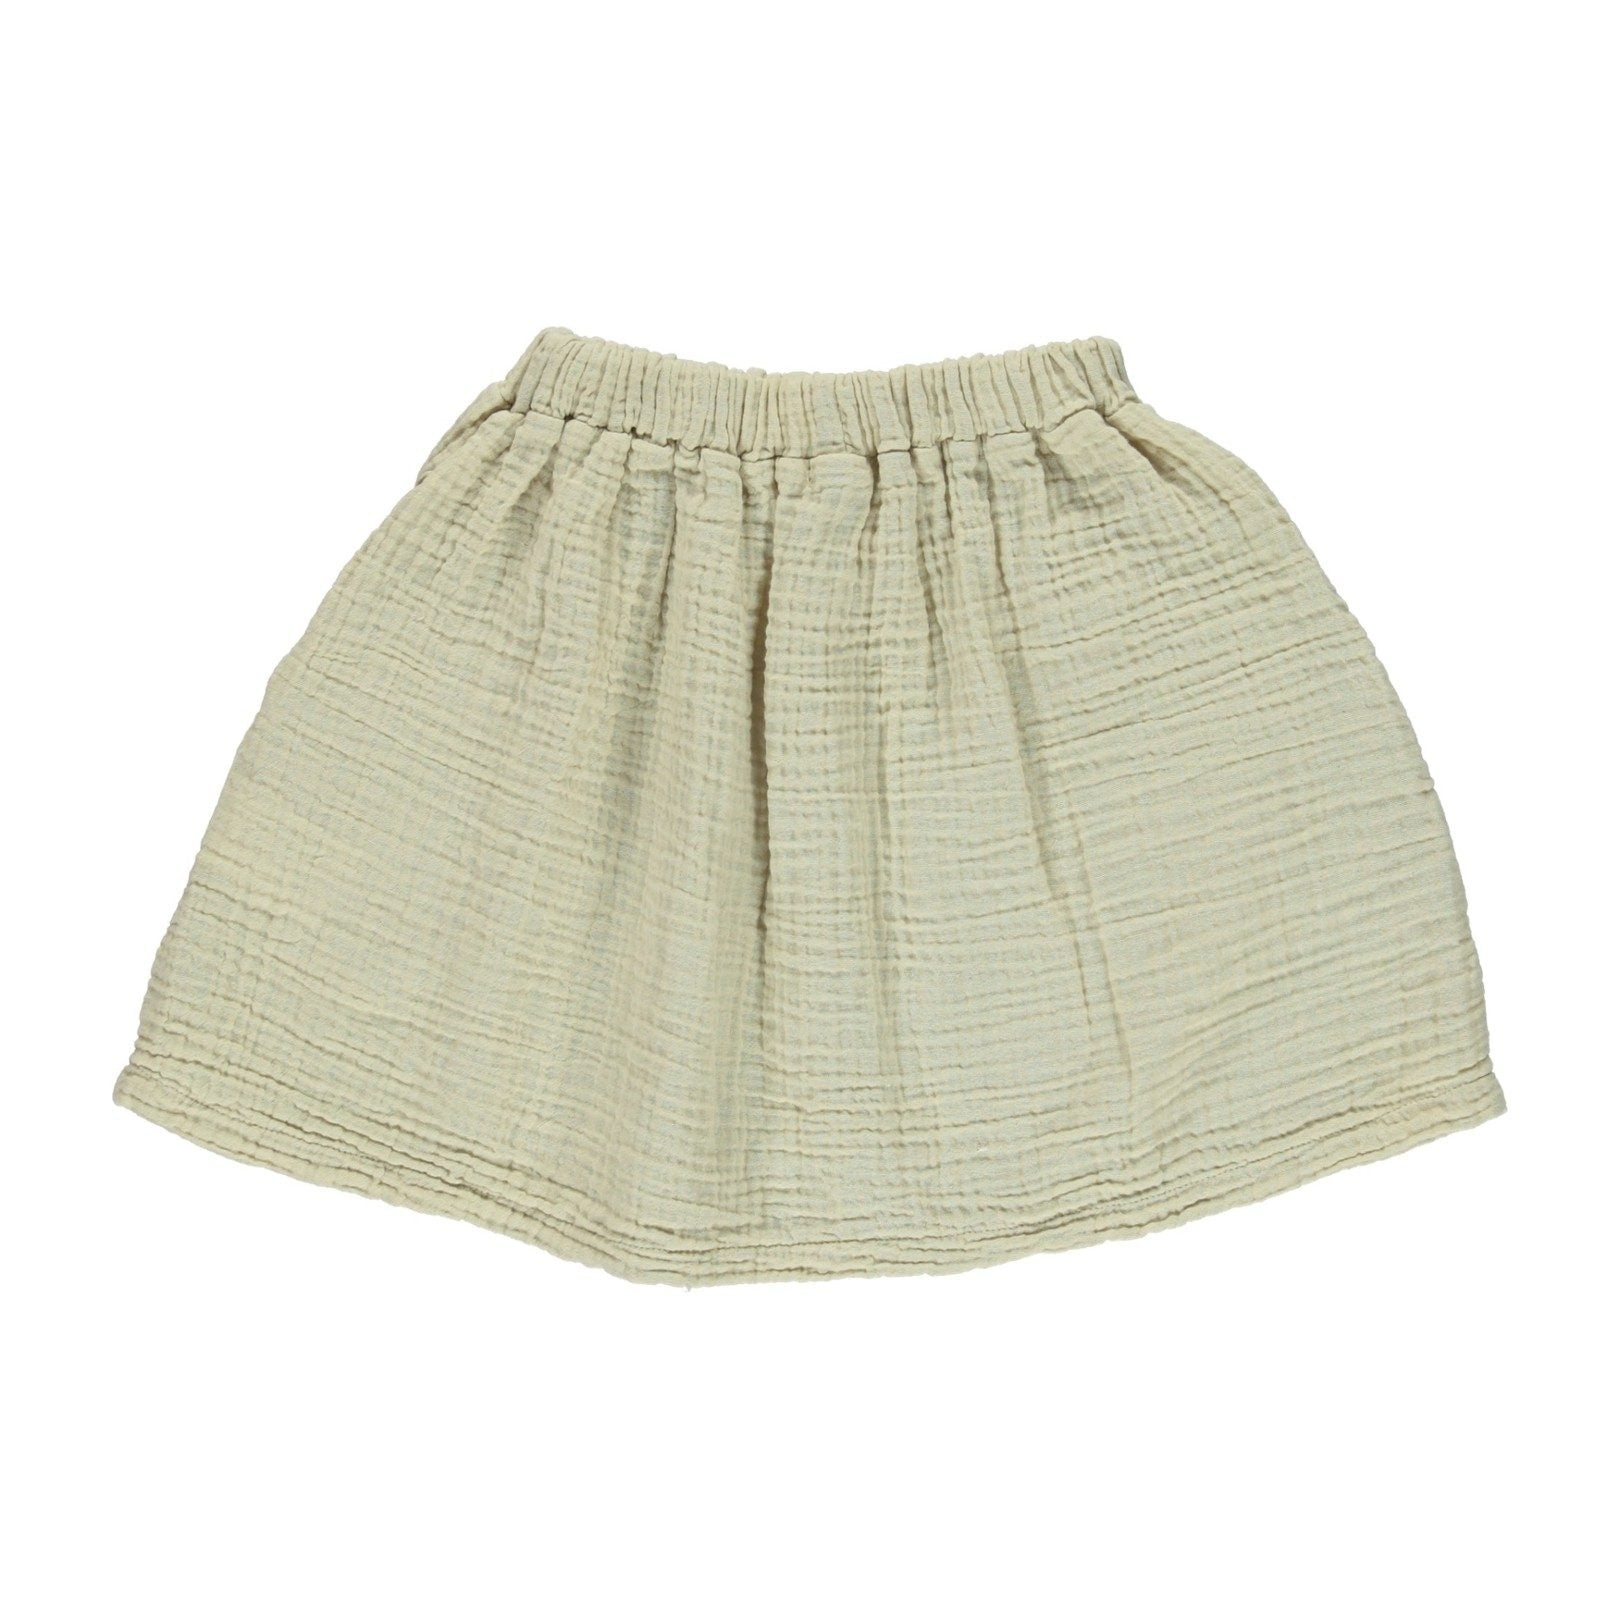 BEBE ORGANIC 'DELIA' SKIRT, TAUPE - Spinel Boutique